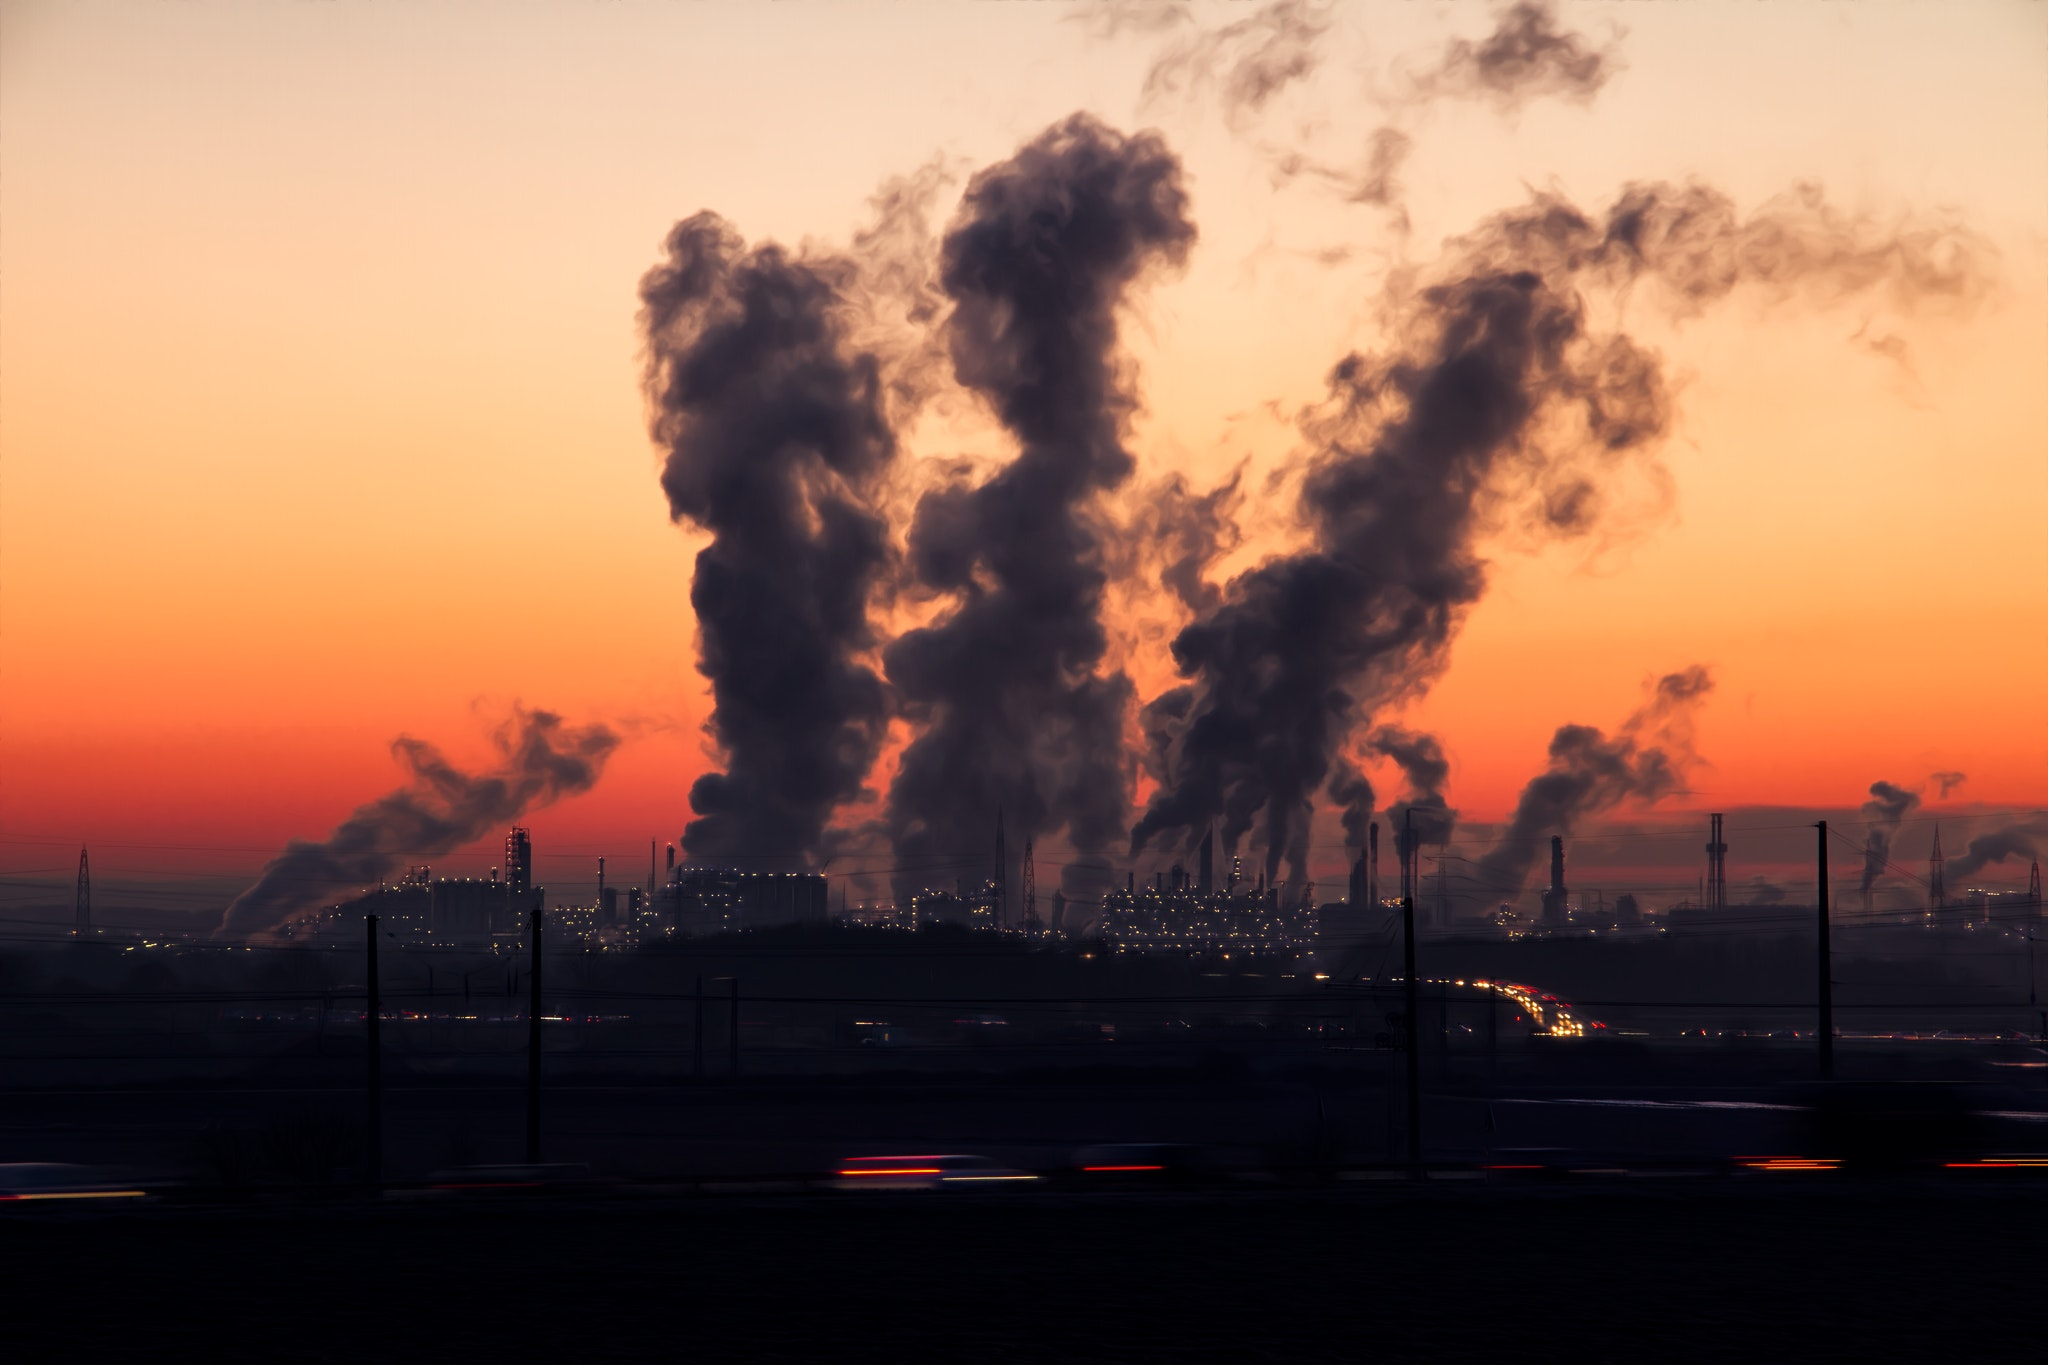 Air Pollution can Seriously Impact your Health-Here is How